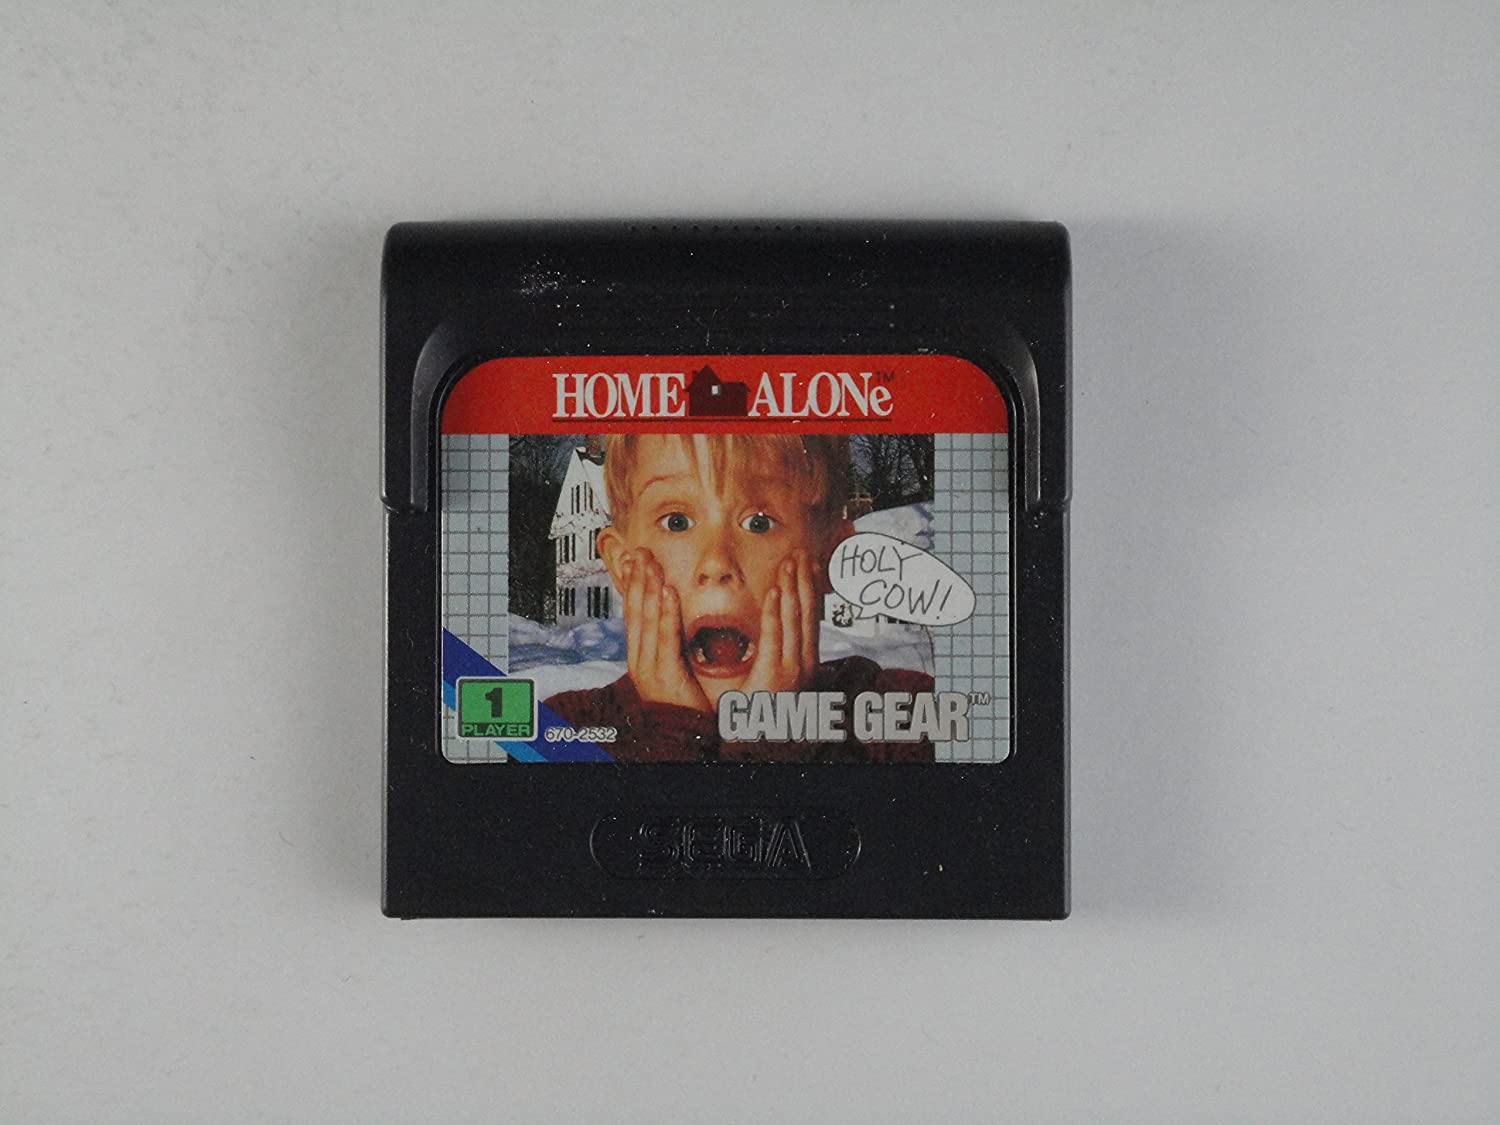 Home Alone - Sega Game Gear